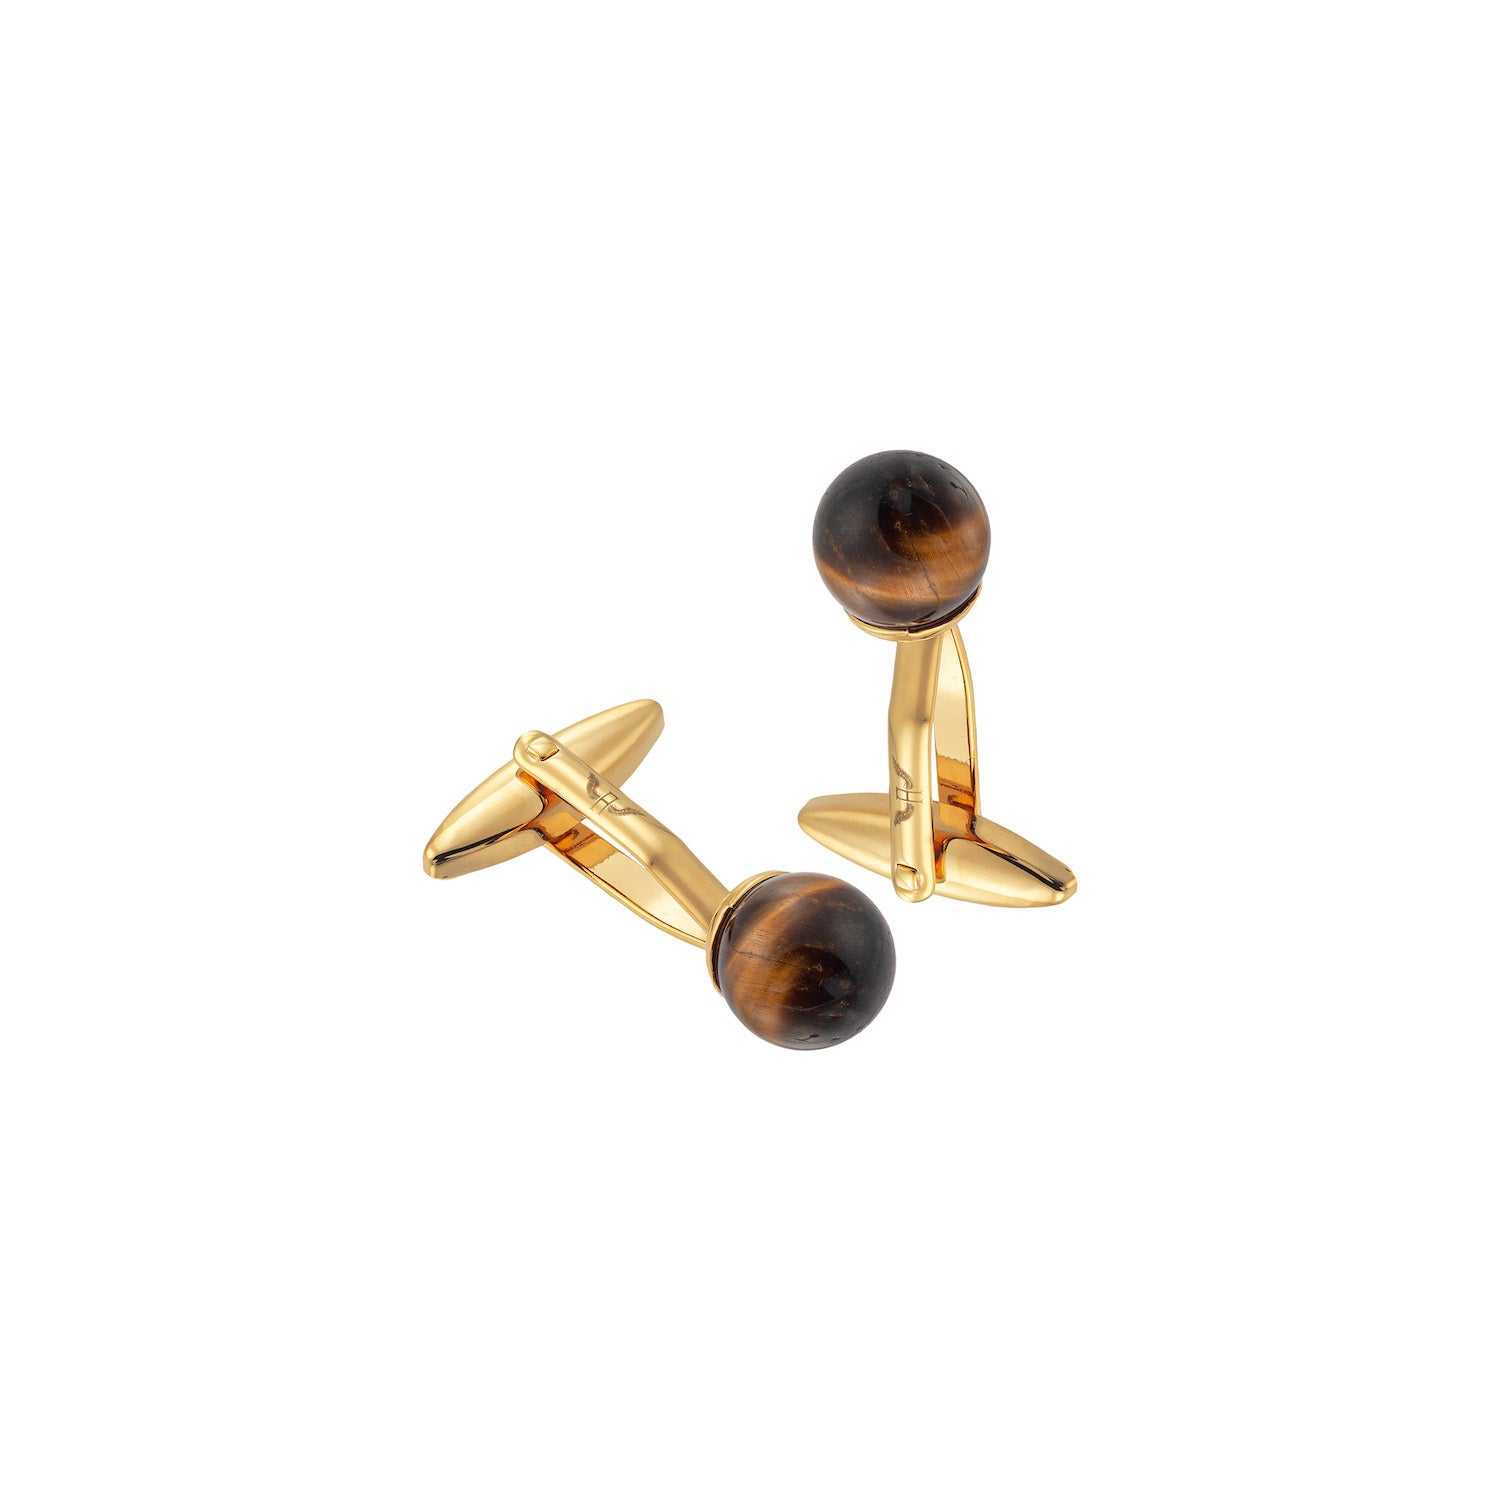 Aeon | Venice Cufflinks |Gold Plated Stainless Steel